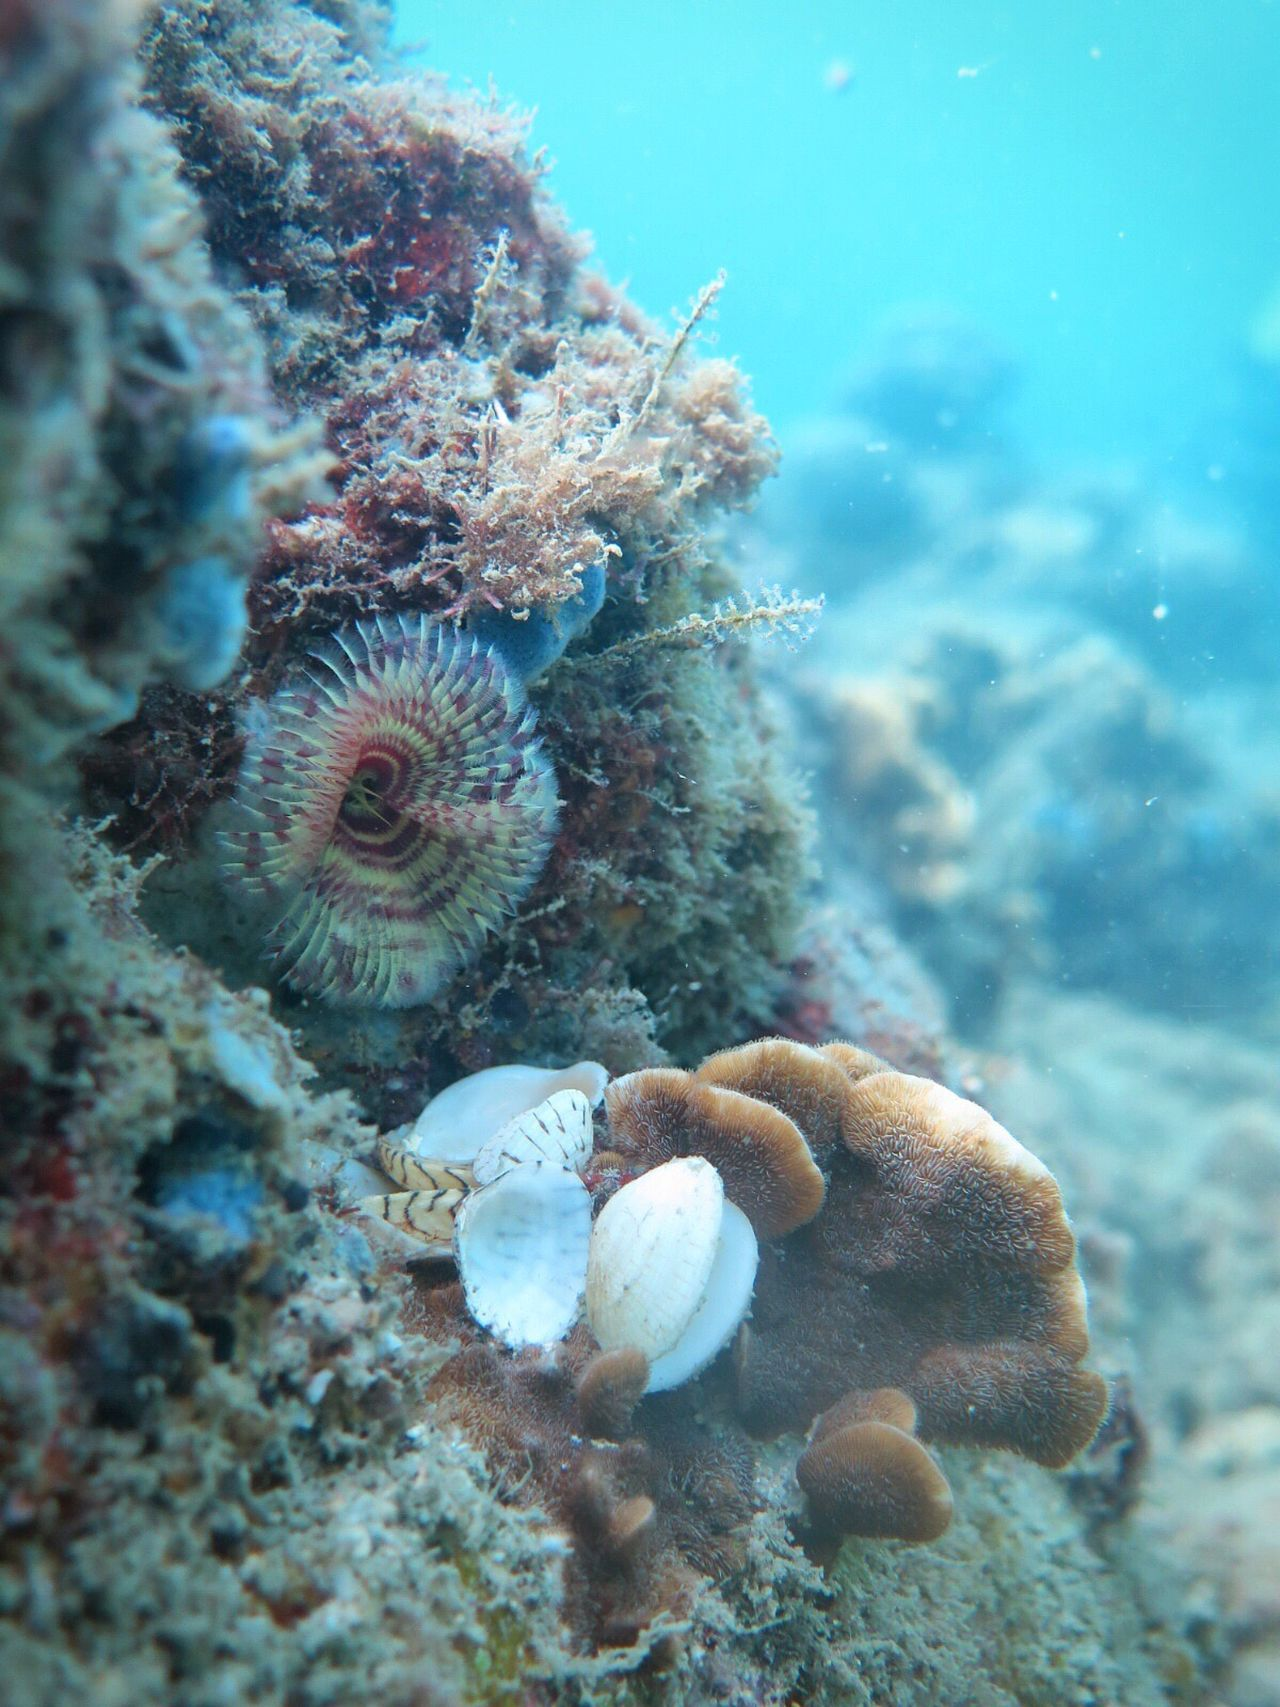 Invertebrate Featherdusterworm Underwater Sea Life Coral UnderSea Sea Animal Themes Swimming Animals In The Wild Water Nature No People Beauty In Nature Close-up Shells Living Organism Underwater Photography Canonphotography in Cambodia